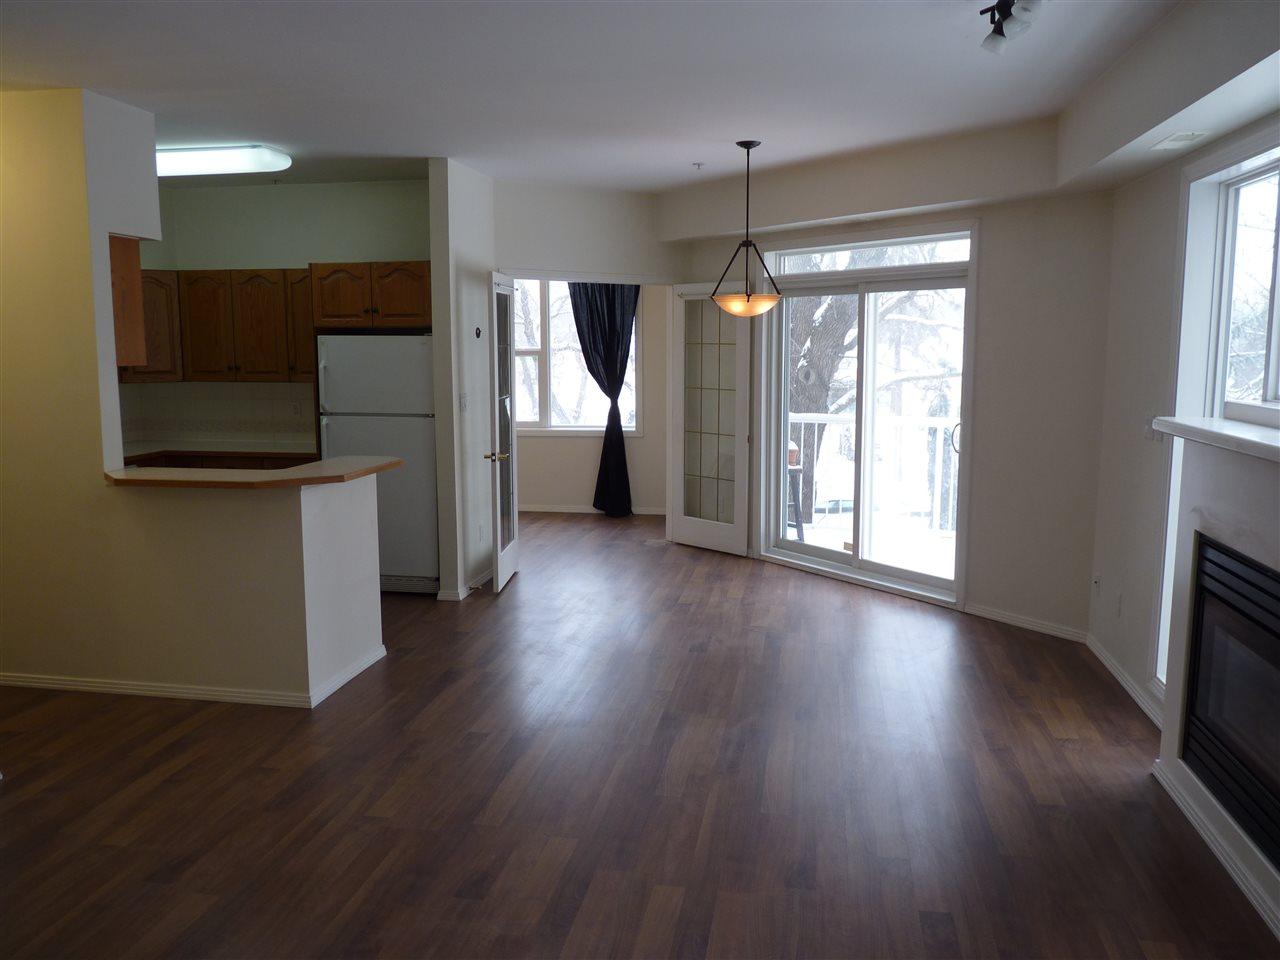 Don't miss out on this well kept 2 bath 3 bedroom condo located in the heart of Garneau! With new flooring, full appliance package, an in-suite front loading laundry set, heated underground parking, secure storage cage, and exceptional proximity to U of A it may be ideal for student accommodations. Take advantage of everything Whyte Avenue has to offer in it's eclectic shops, broad range of dining options, and incredible nightlife, then walk home to this property located on the quiet end of the Avenue. This location also provides great access to downtown or the legislature for those professionals or politicos seeking low maintenance living within a character neighbourhood outside the downtown core.